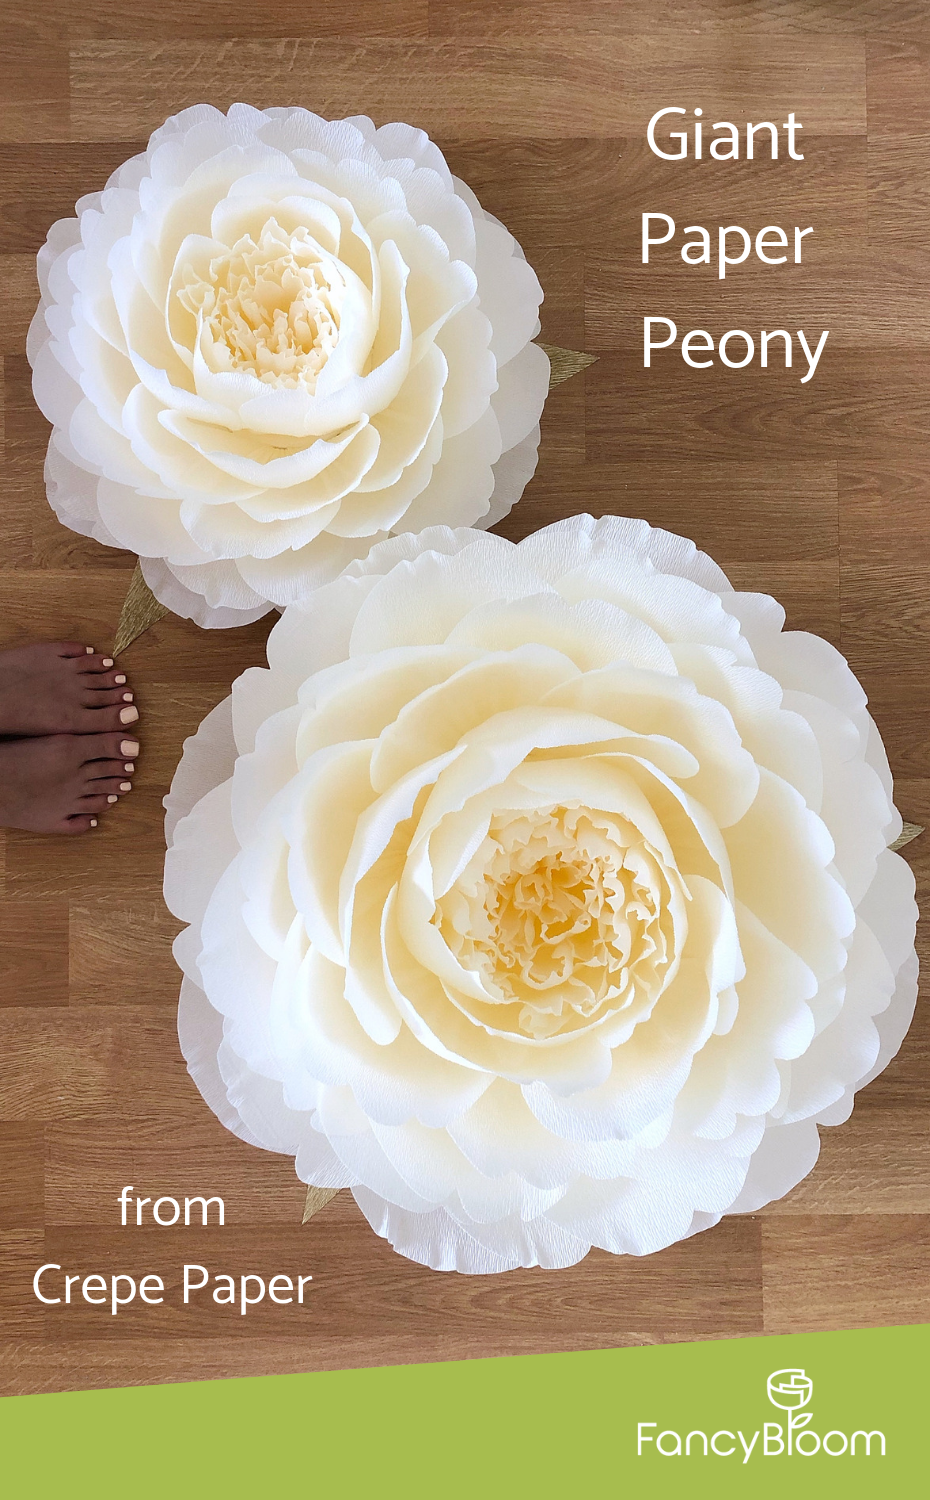 Crepe paper giant peonies from FancyBloom